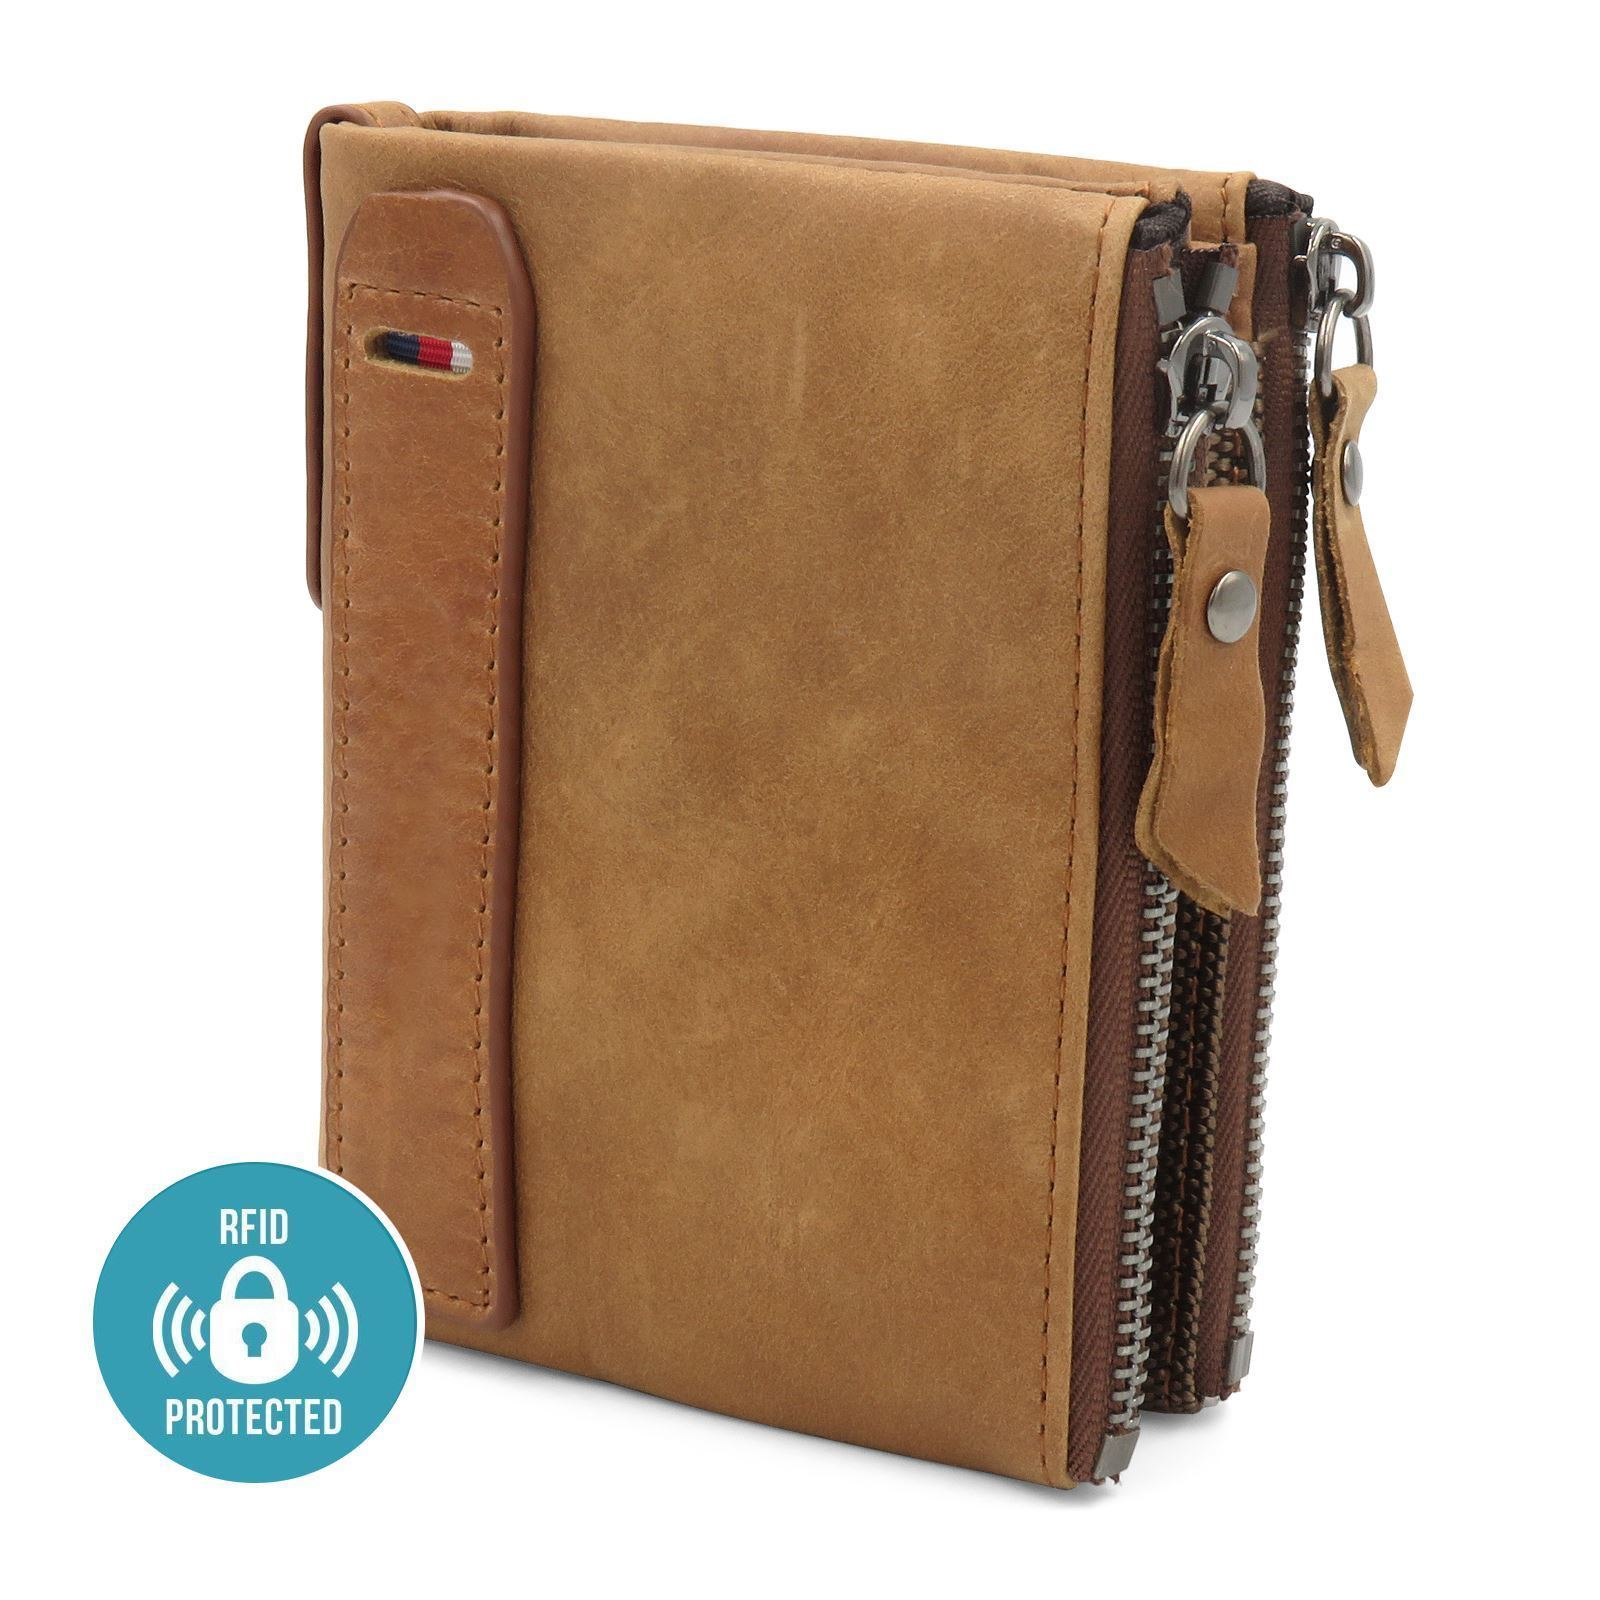 Mens Luxurious 100/% Genuine RFID SAFE Leather Wallet With Zip Cash Coin Pocket